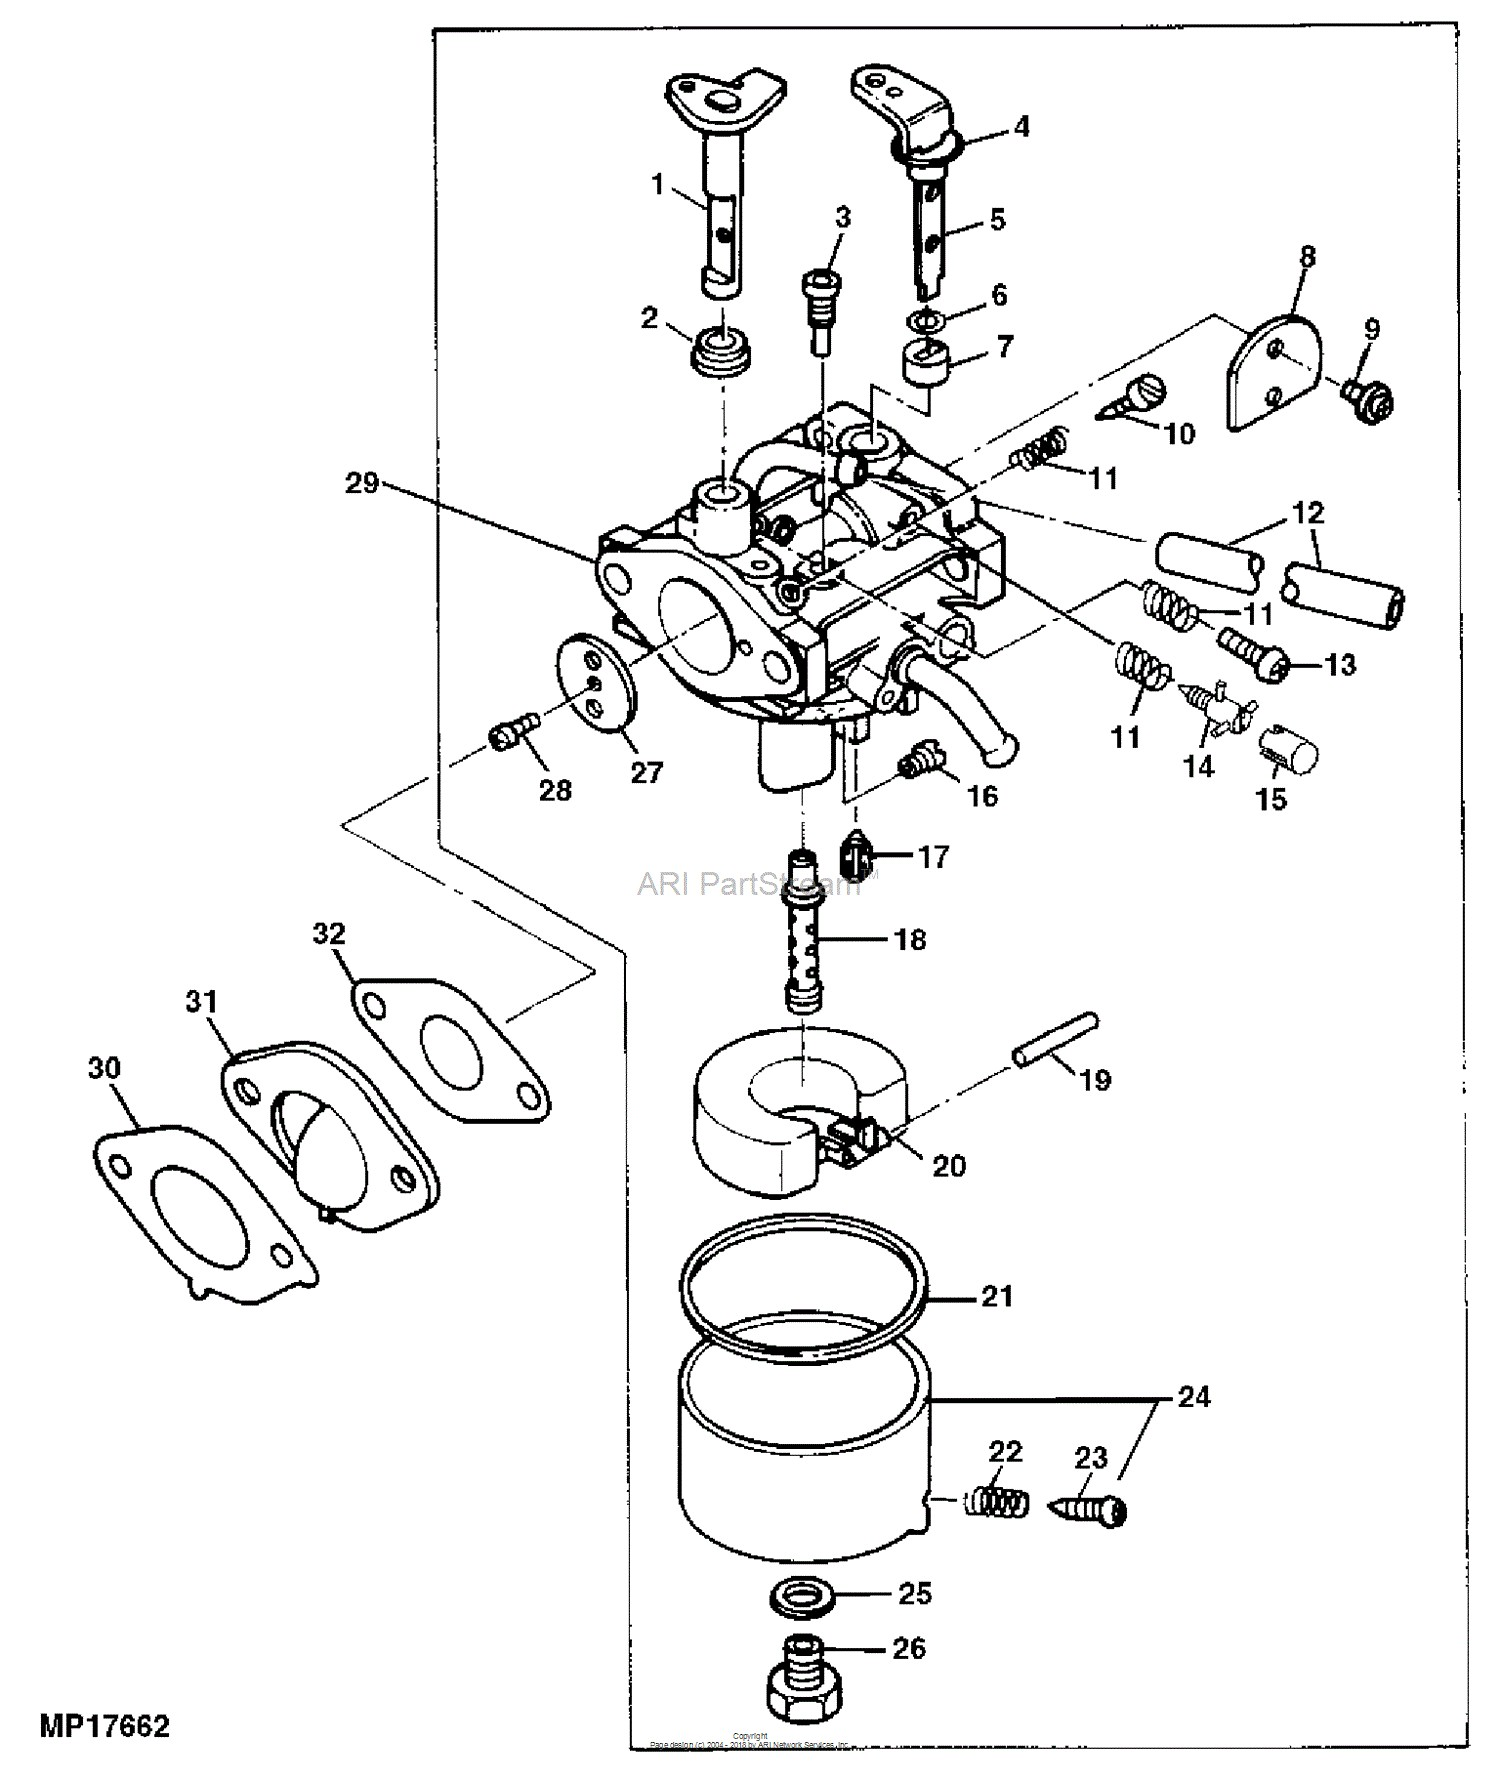 john deere gator engine parts diagram john deere jx75 parts best deer s water alliance org of john deere gator engine parts diagram l111 wiring diagram wiring library